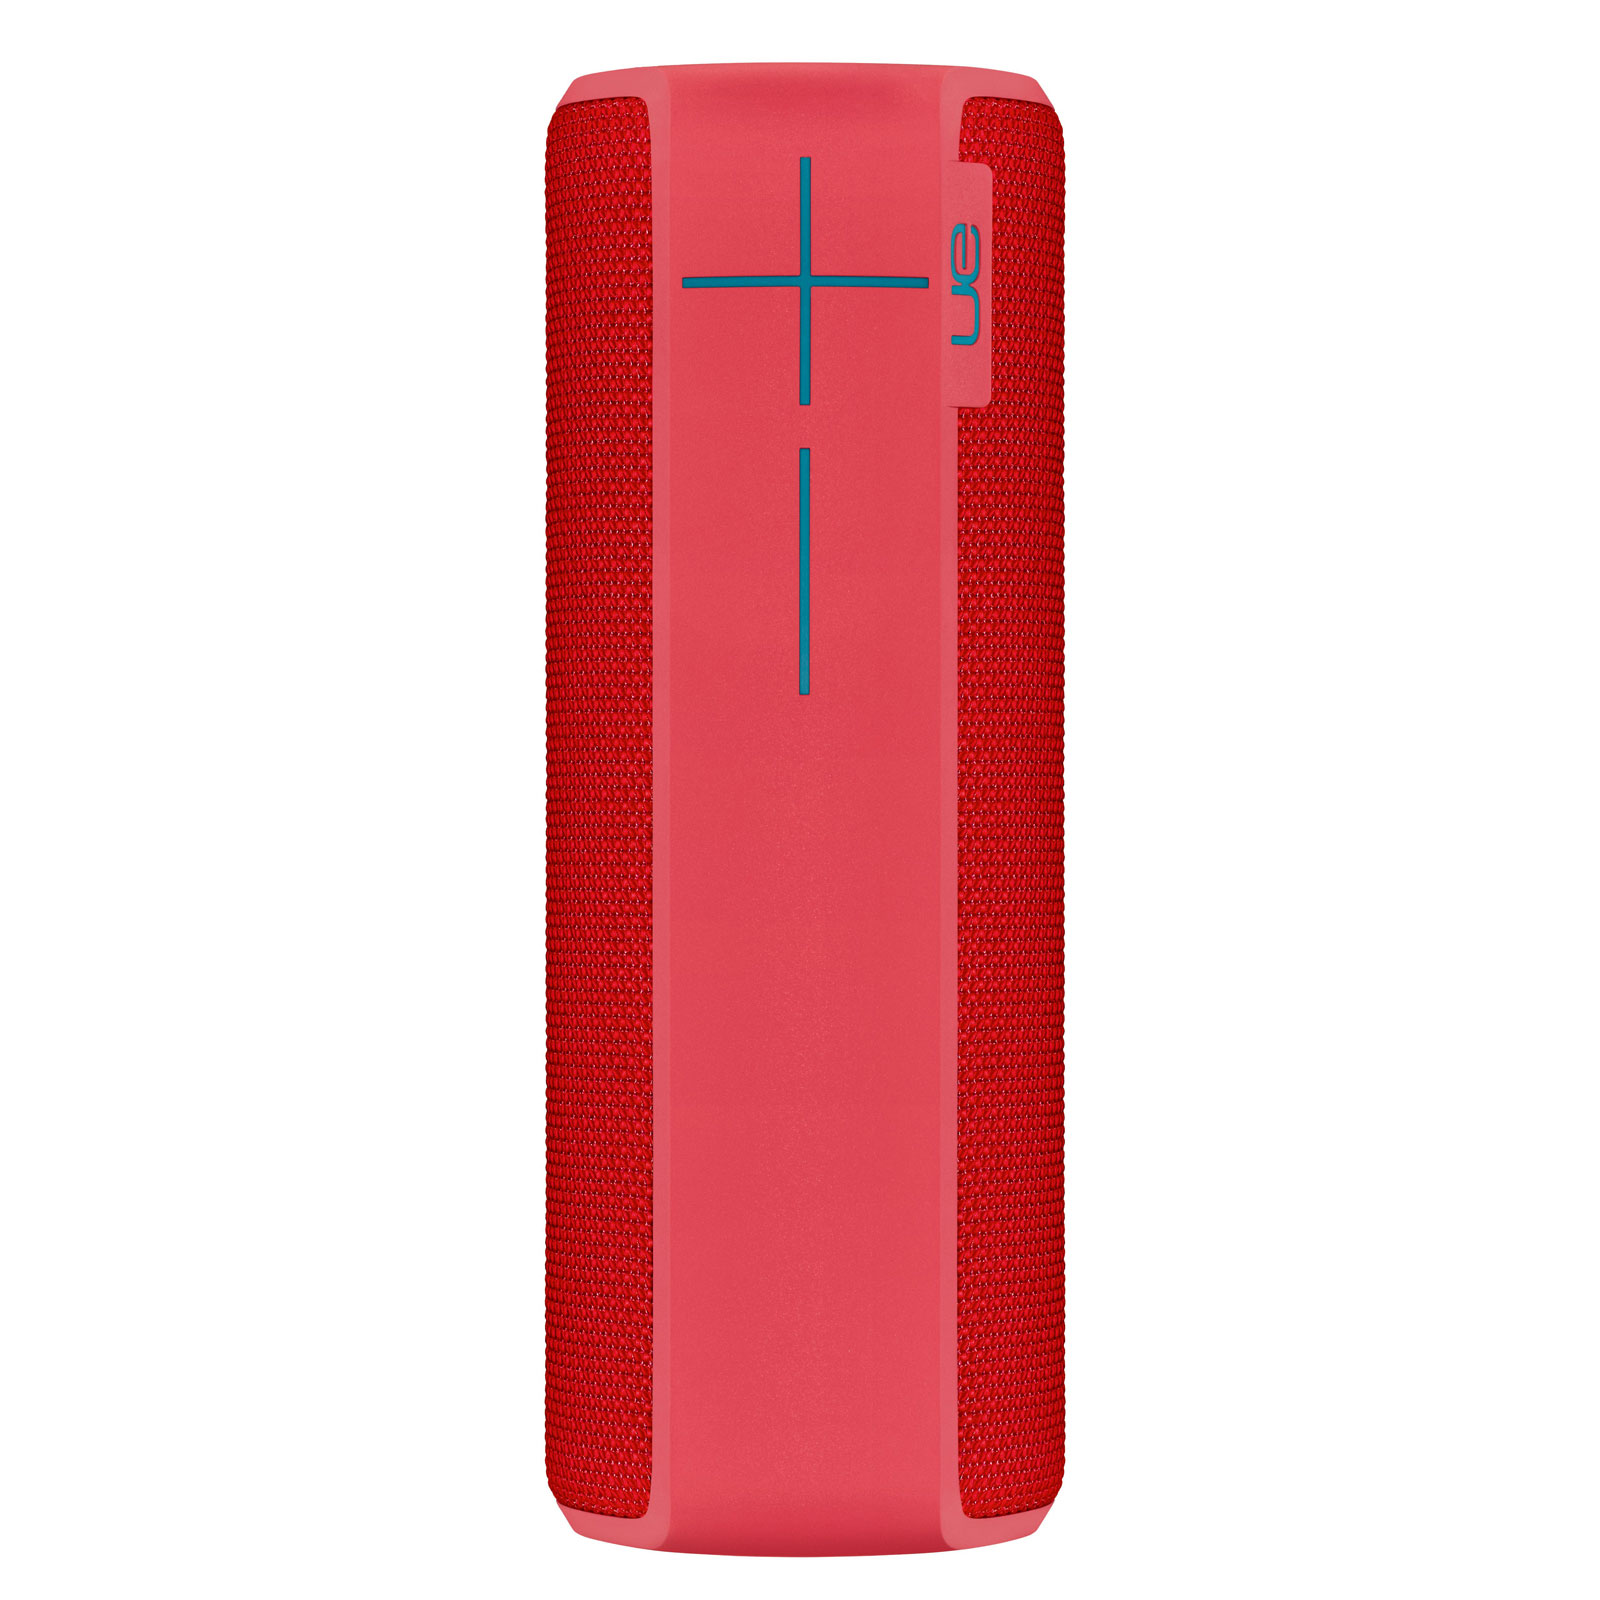 Ue boom 2 rouge dock enceinte bluetooth ultimate ears for Housse ultimate ears boom 2